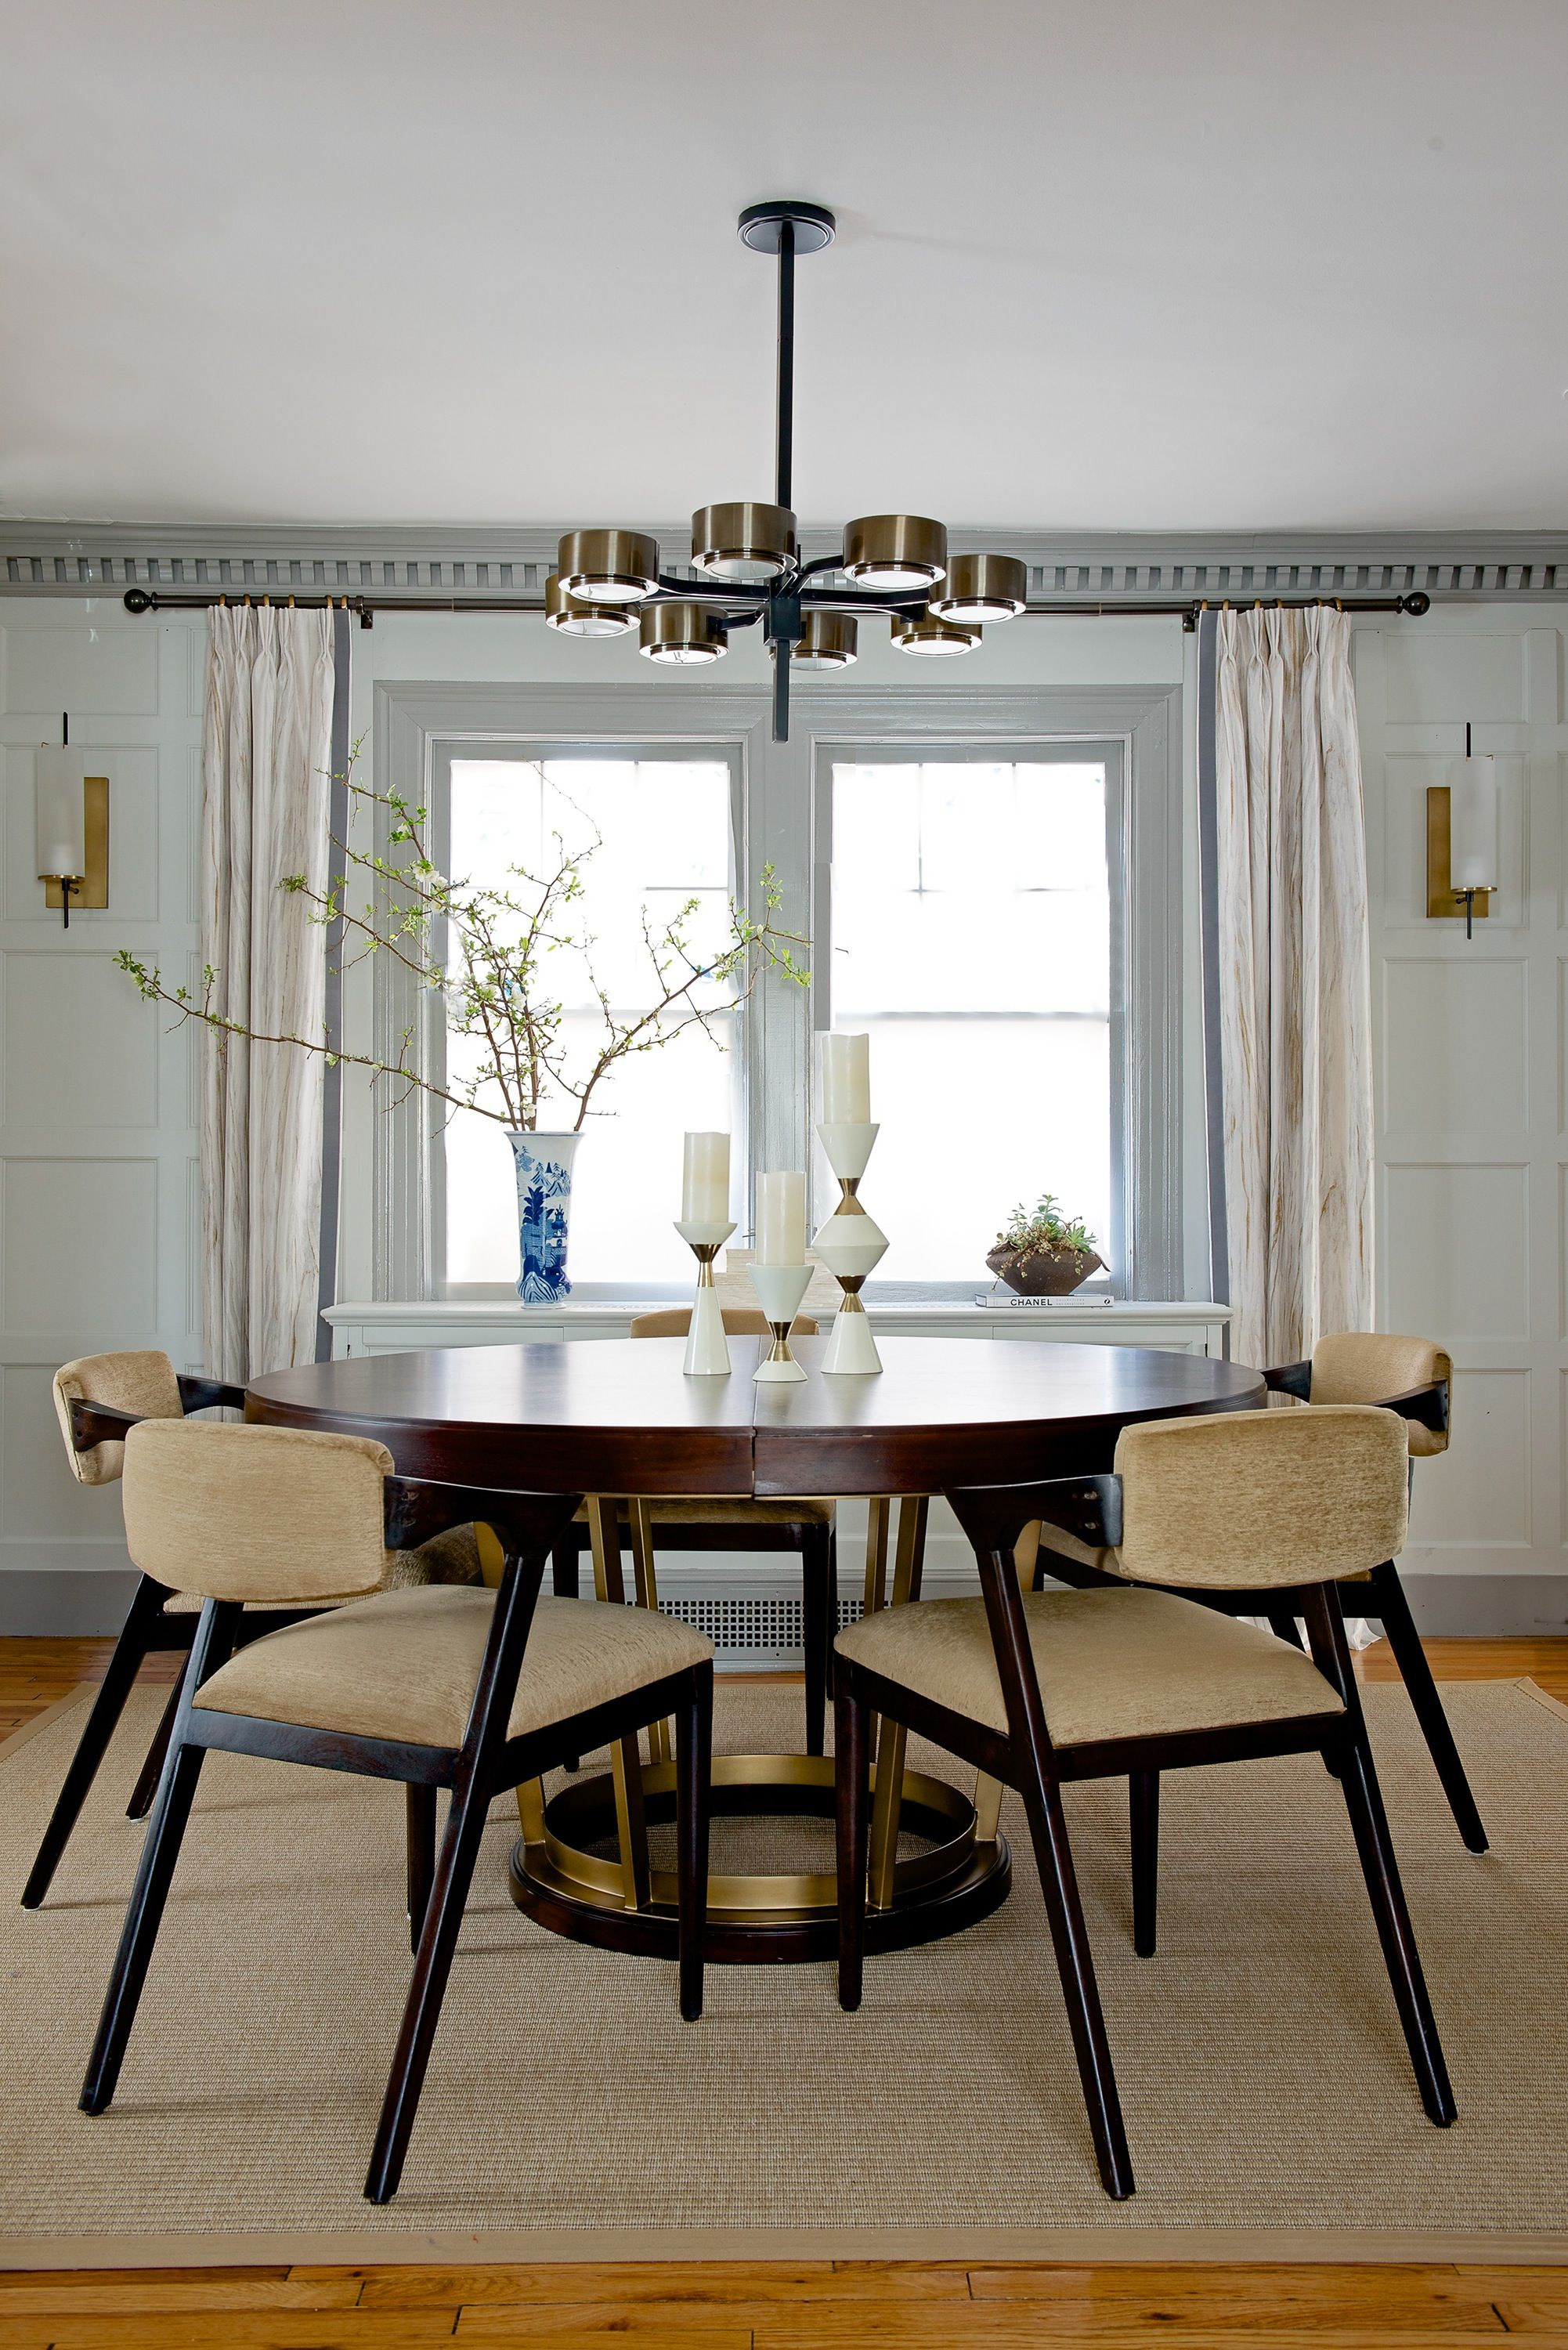 25 dining room design ideas featuring round tables round tables